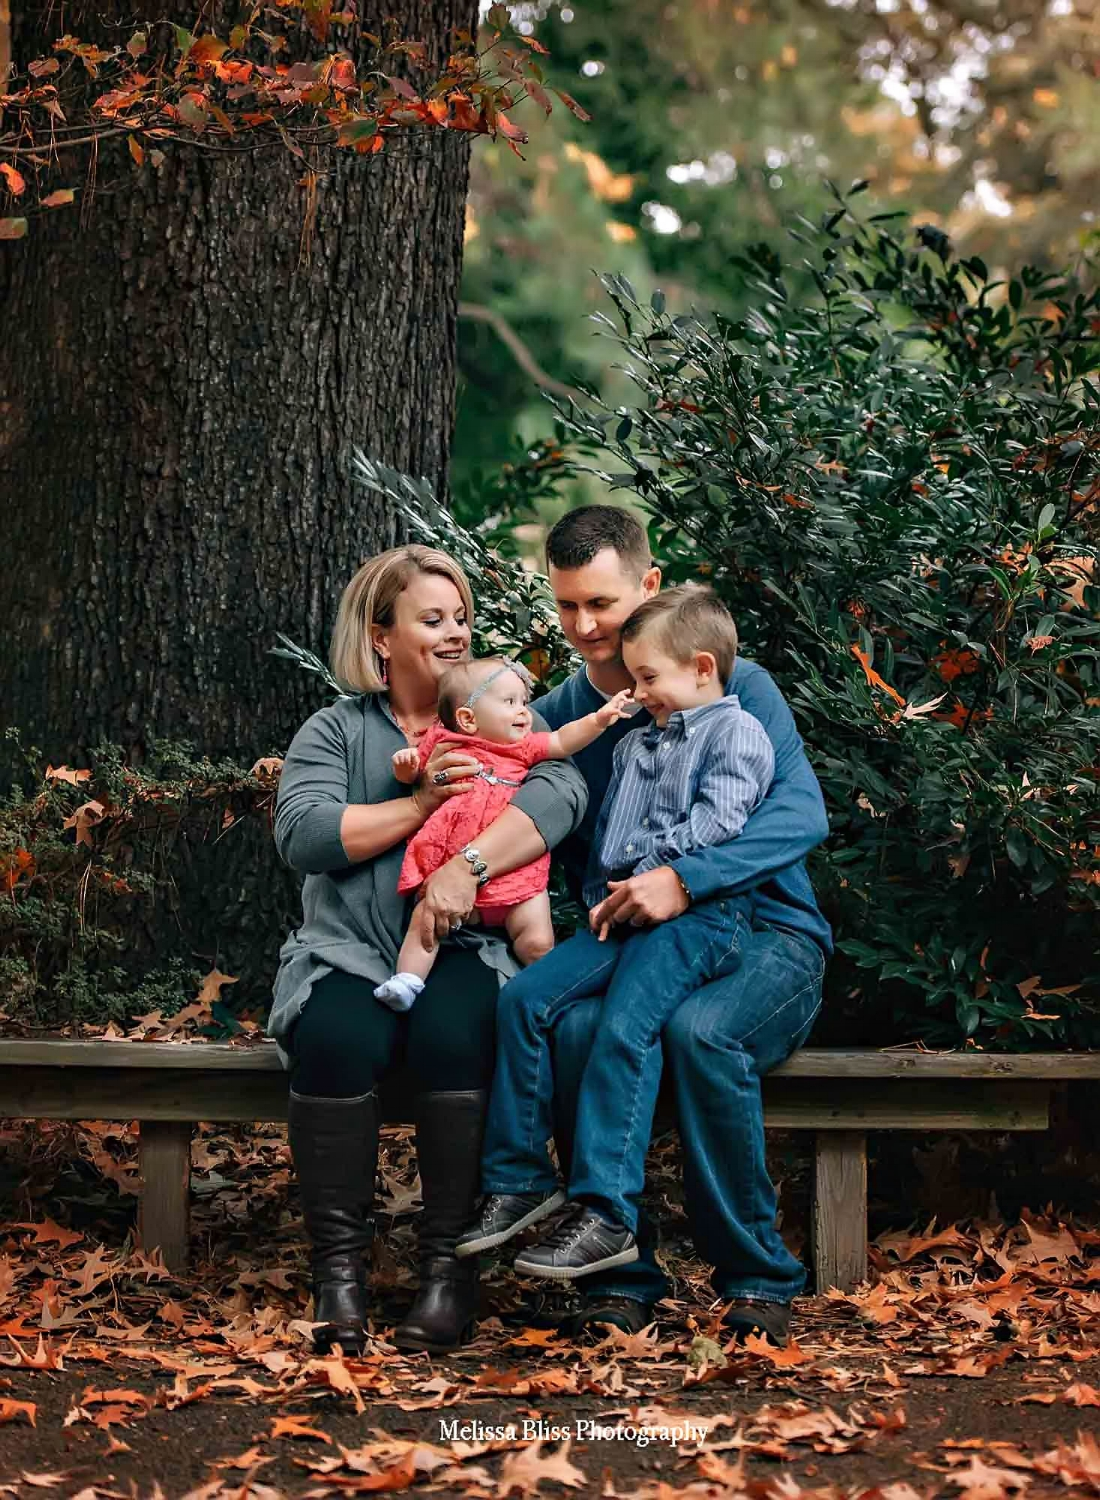 family-photo-fall-lifestyle-session-melissa-bliss-photography-norfolk-virginia-beach-chesapeake-family-photographers.jpg